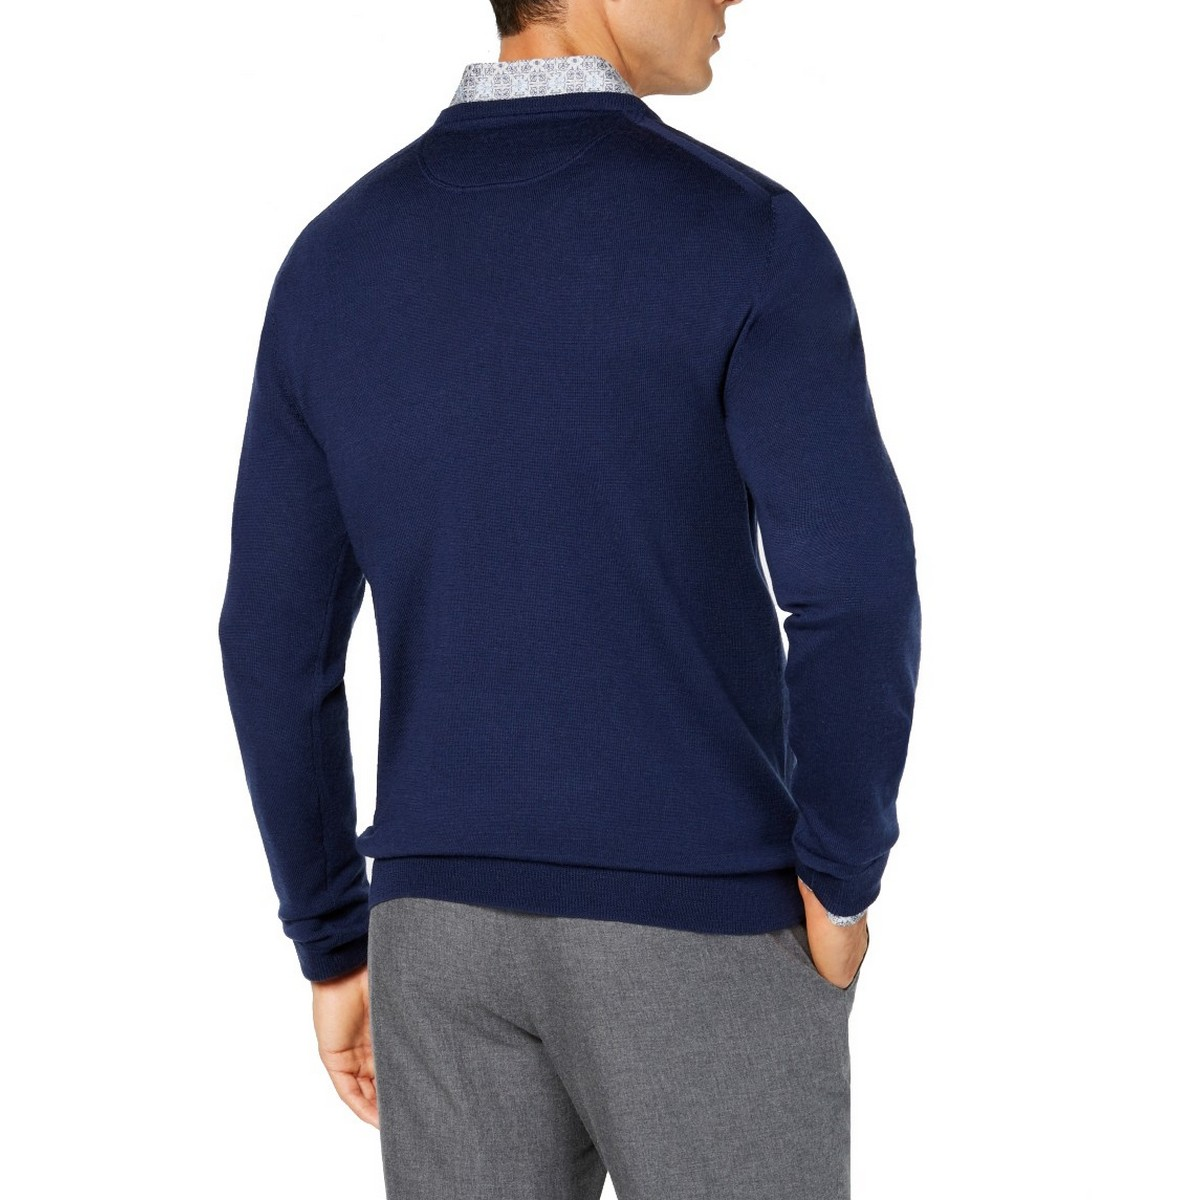 TASSO-ELBA-NEW-Men-039-s-100-Extrafine-Merino-Wool-V-Neck-Sweater-TEDO thumbnail 3